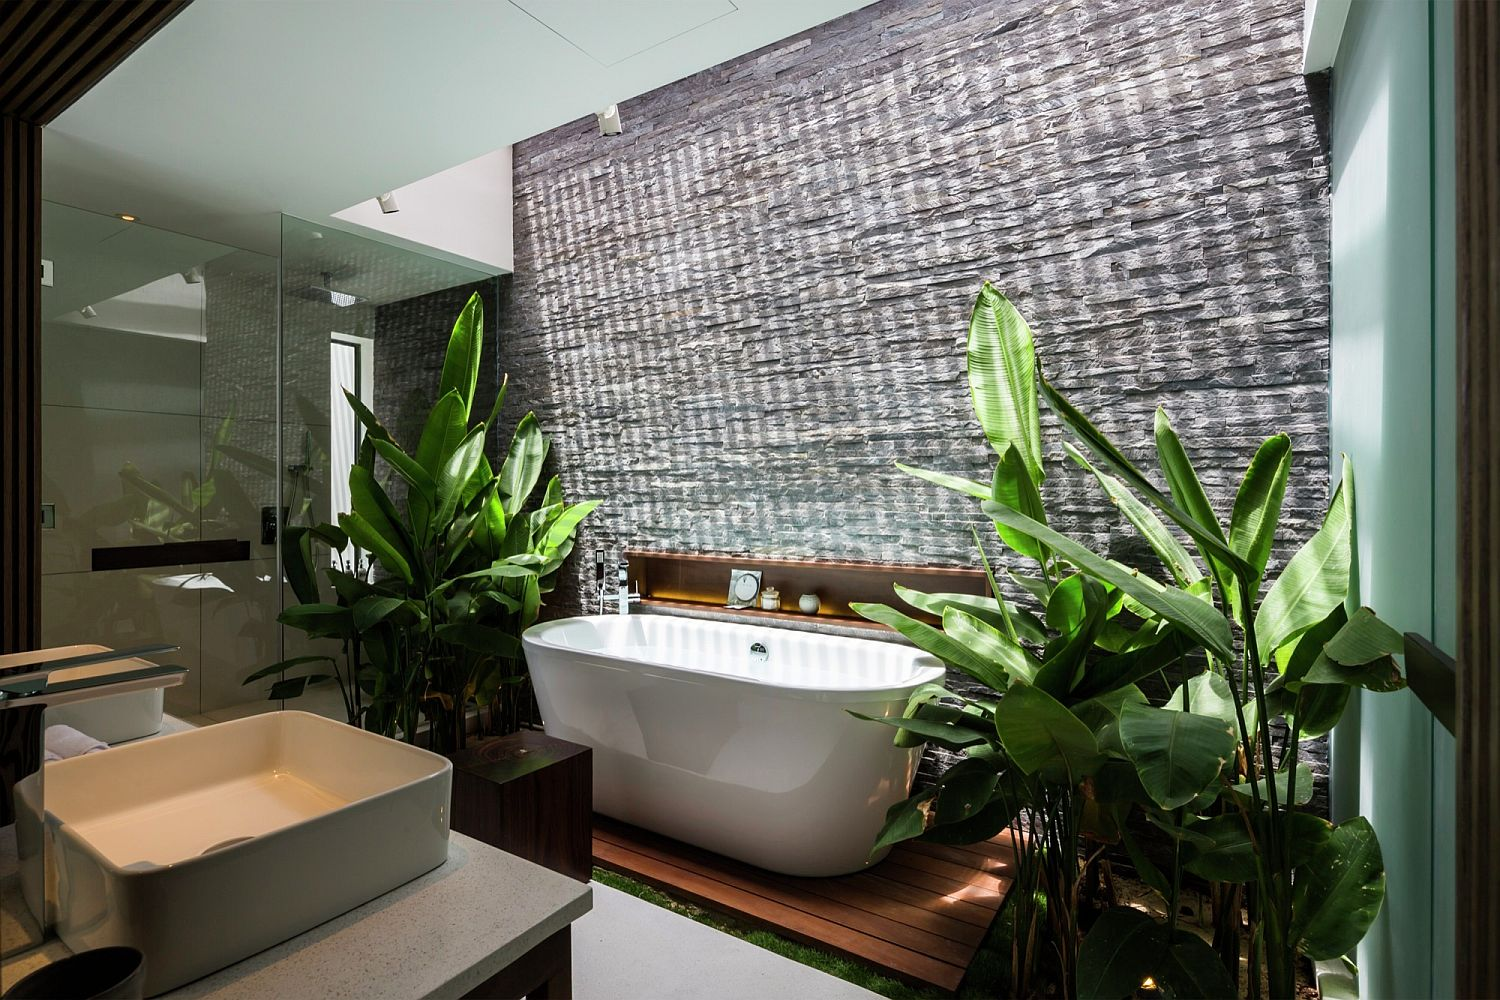 Tropical mdoern bathroom oozes in class and luxury